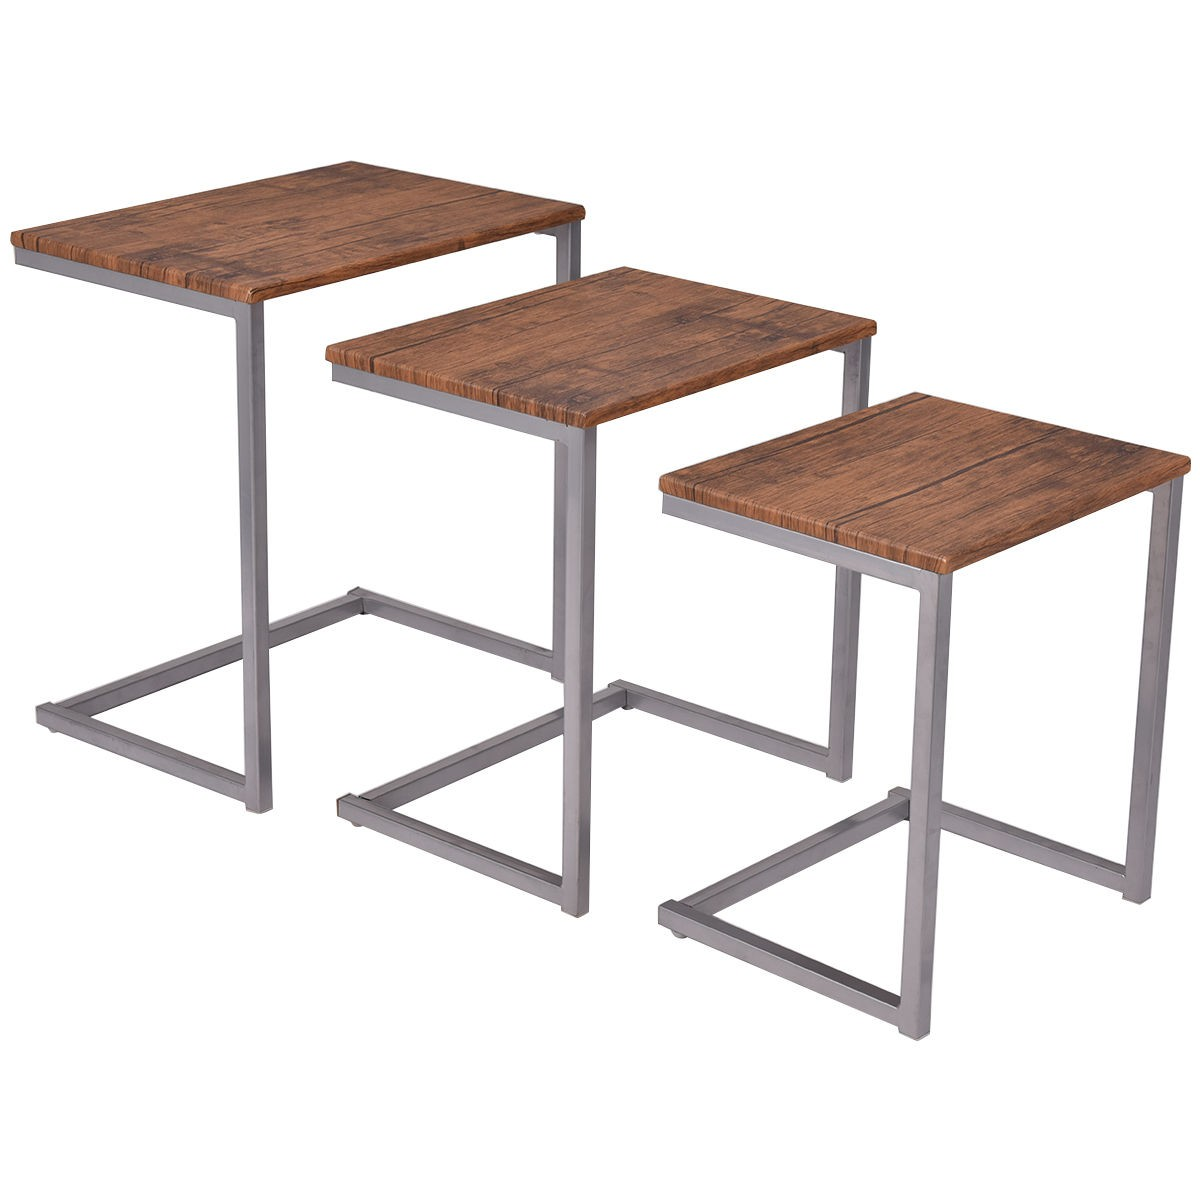 3Pcs/set Steel Stacking Nesting Coffee End Tables Steel Sube ...